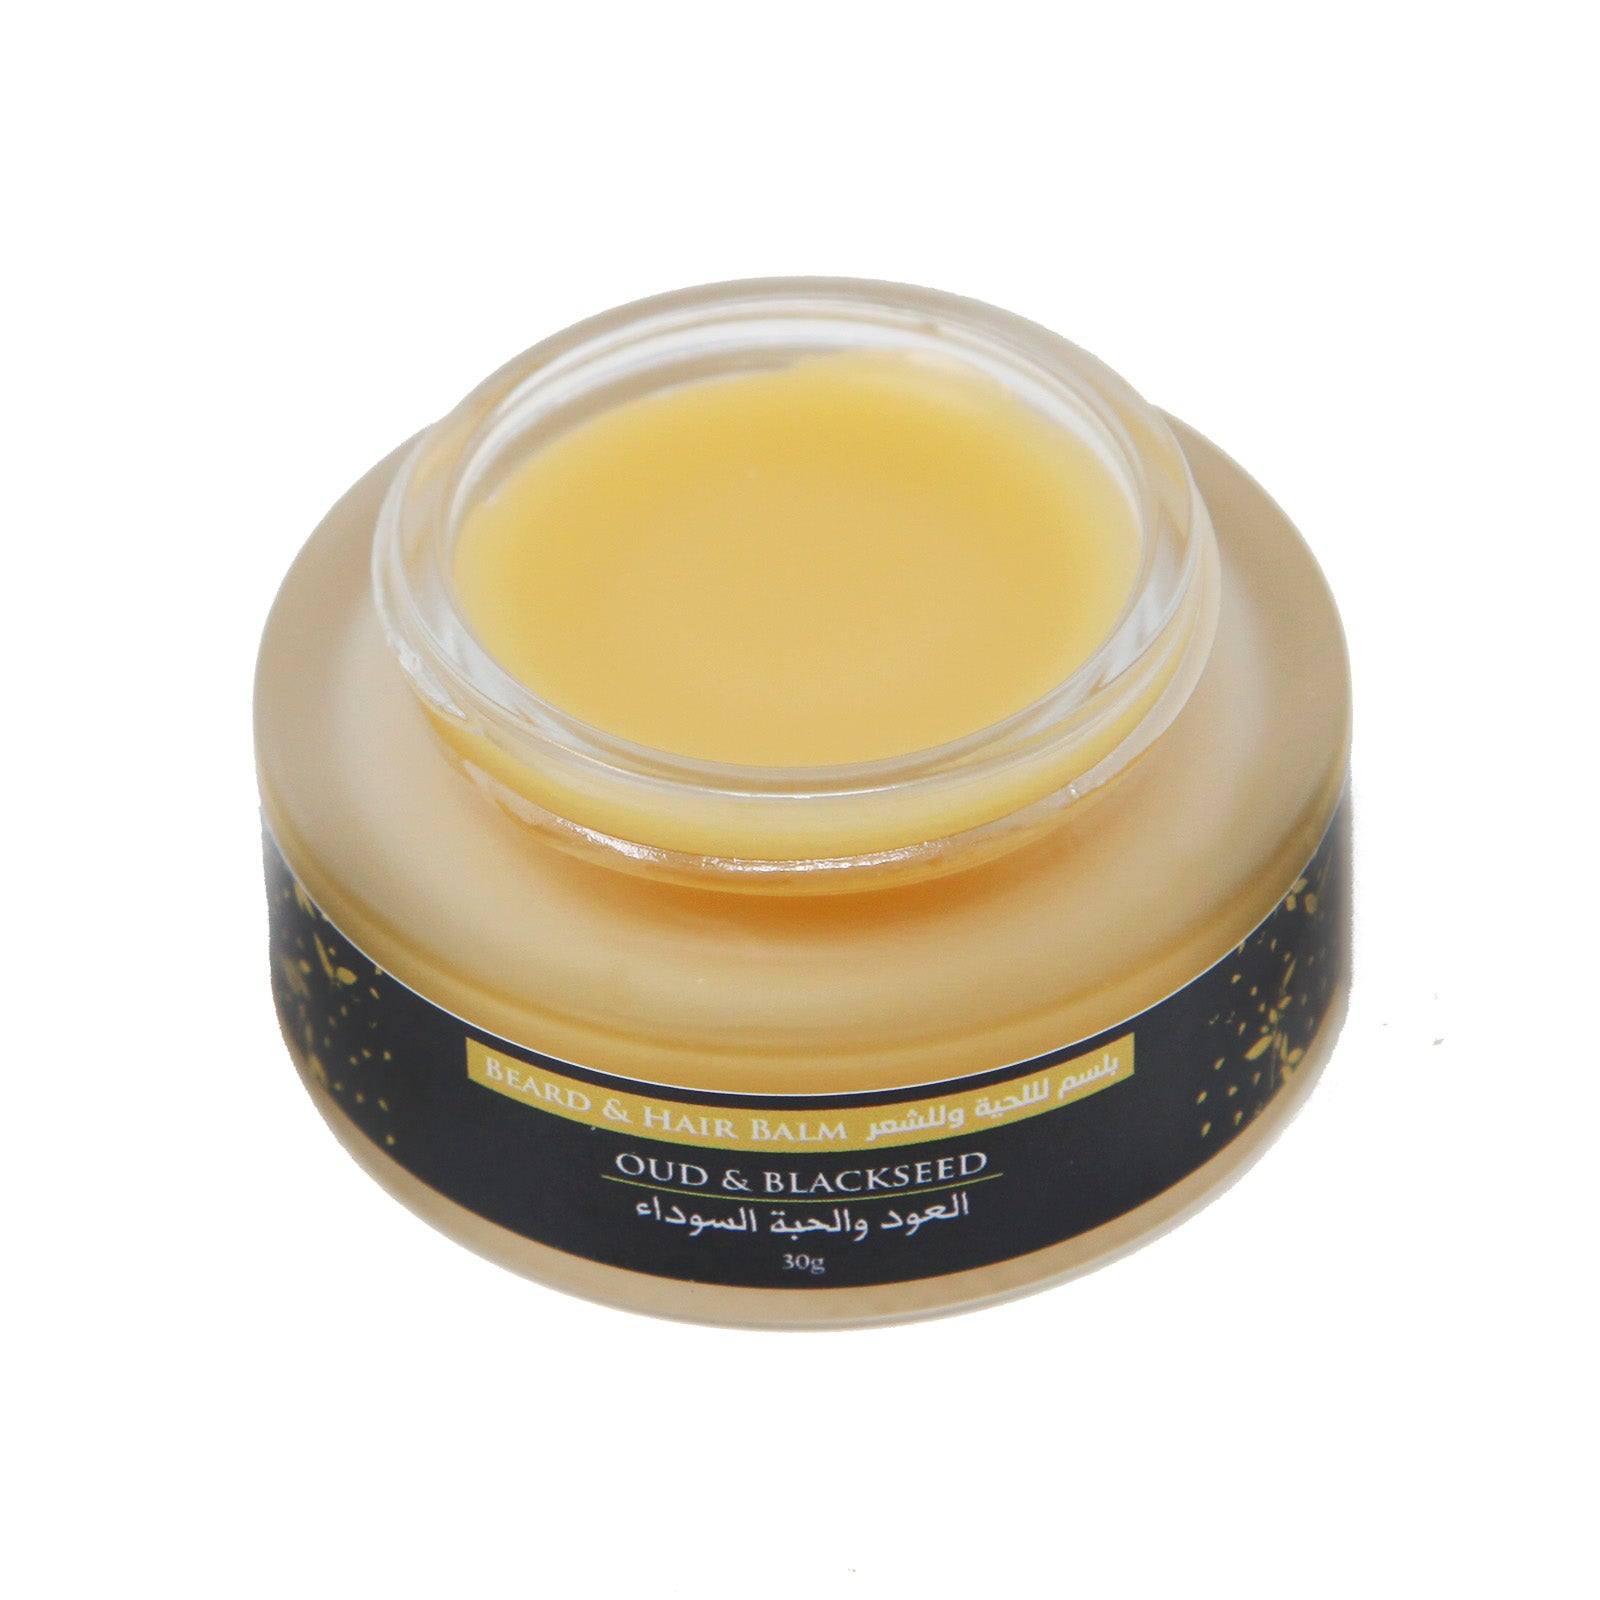 Oud and Blackseed Beard Balm - 30g